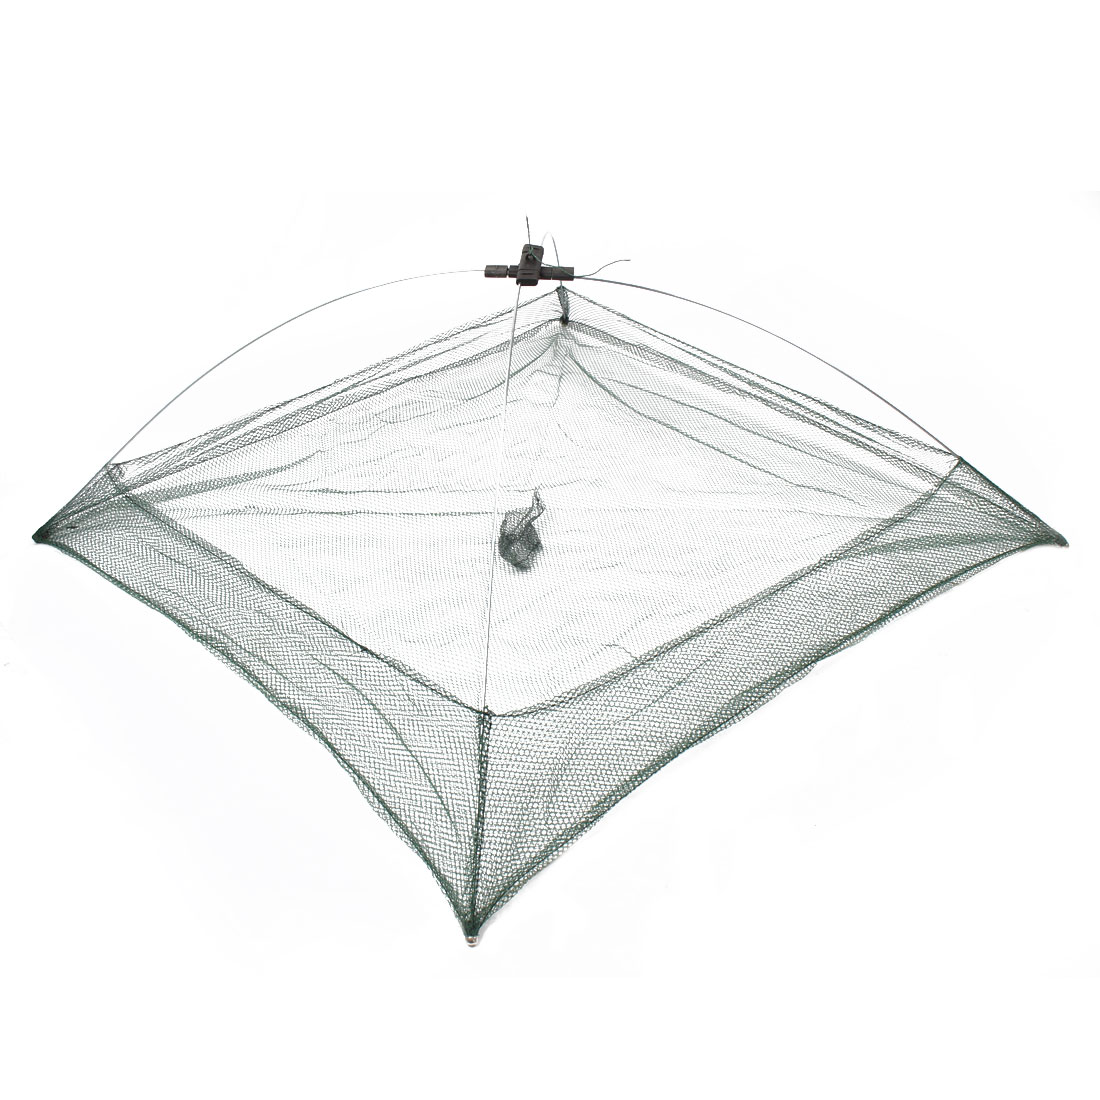 Foldable-Hex-Mesh-Crab-Trap-Baits-Cast-Umbrella-Shape-Dip-Net-Yooyb